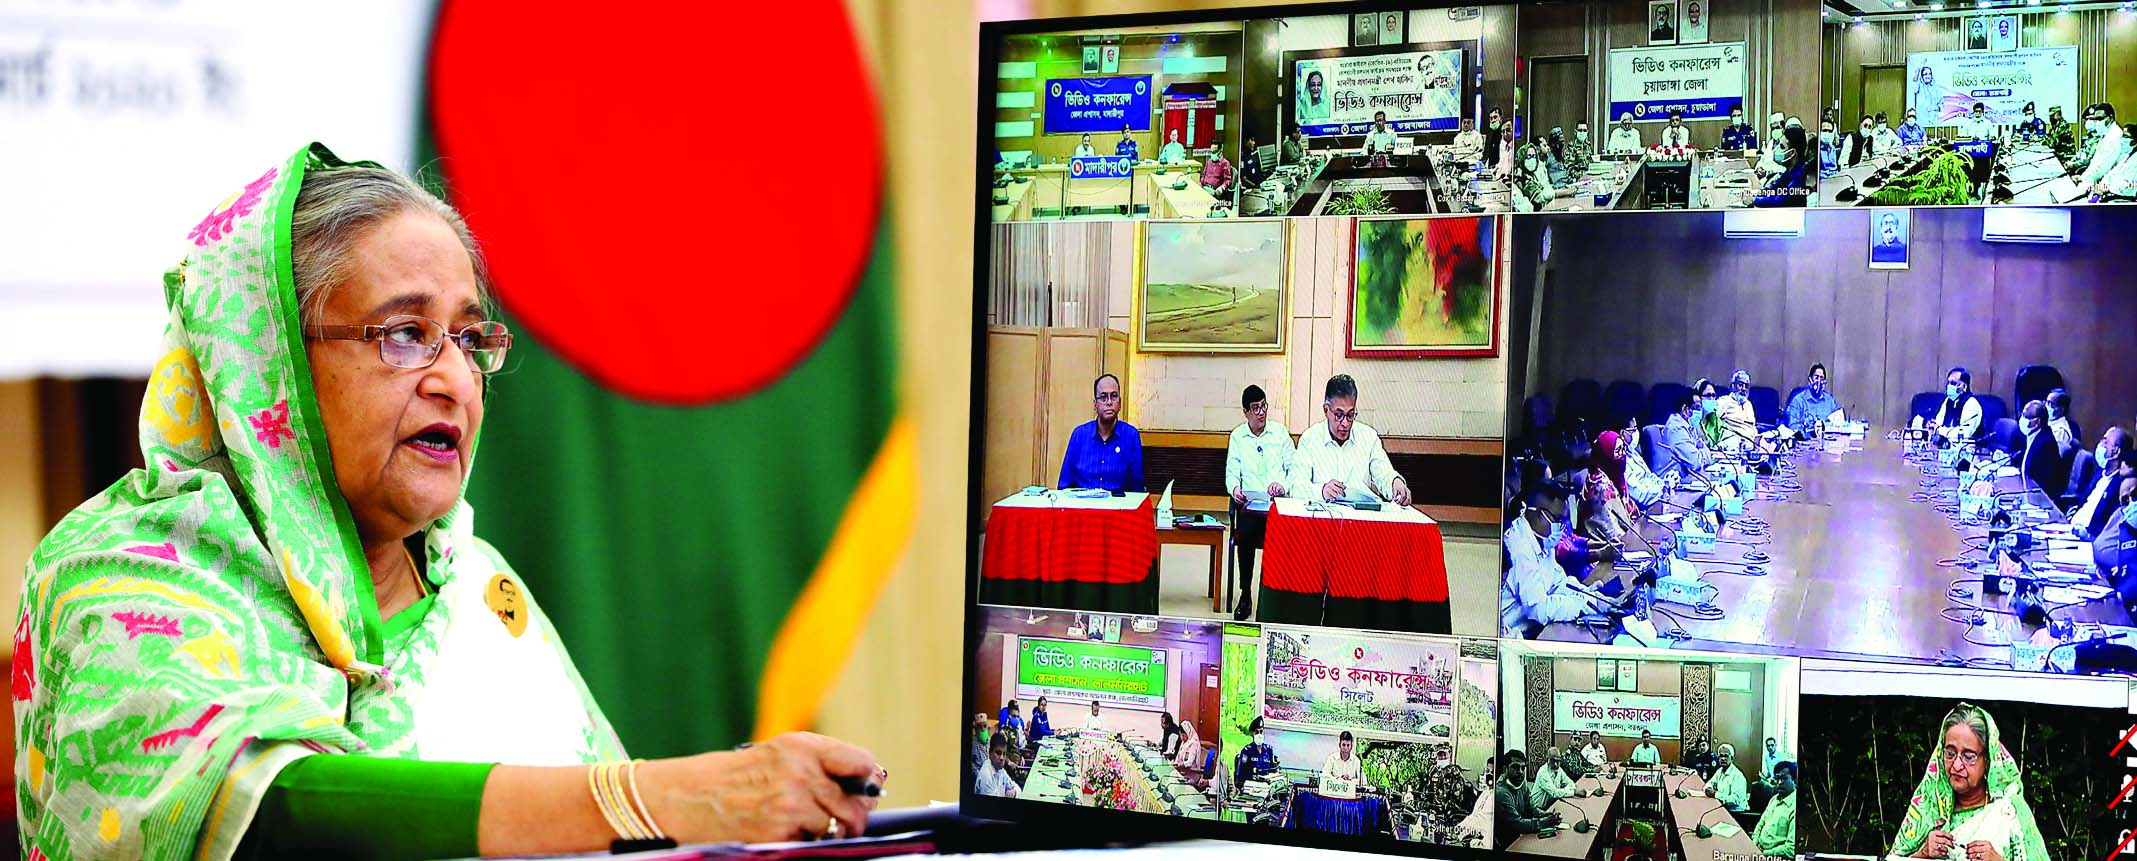 Prime Minister Sheikh Hasina speaking with field level officials through video conferencing from Ganobhaban on Tuesday with a view to coordinating ongoing activities to prevent coronavirus.